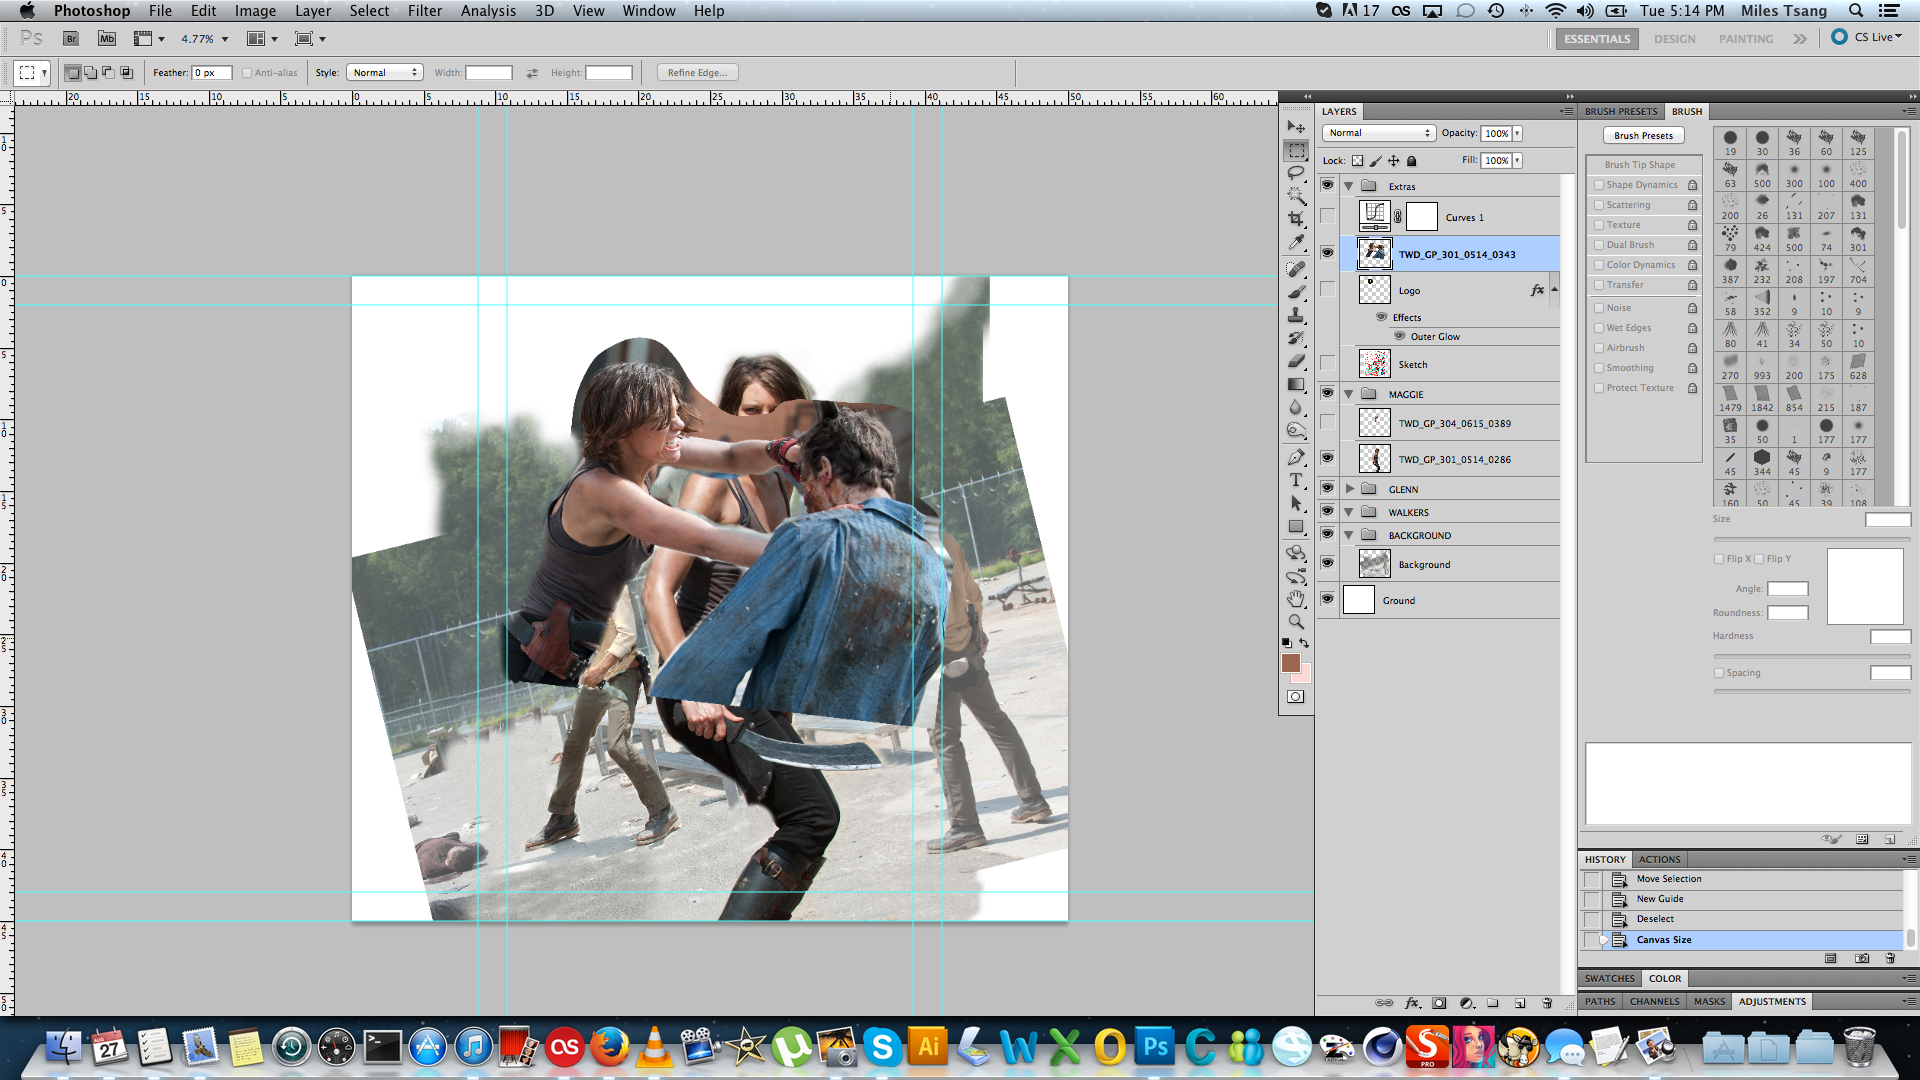 Lauren Cohan cutting a zombie being cut up in Photoshop.